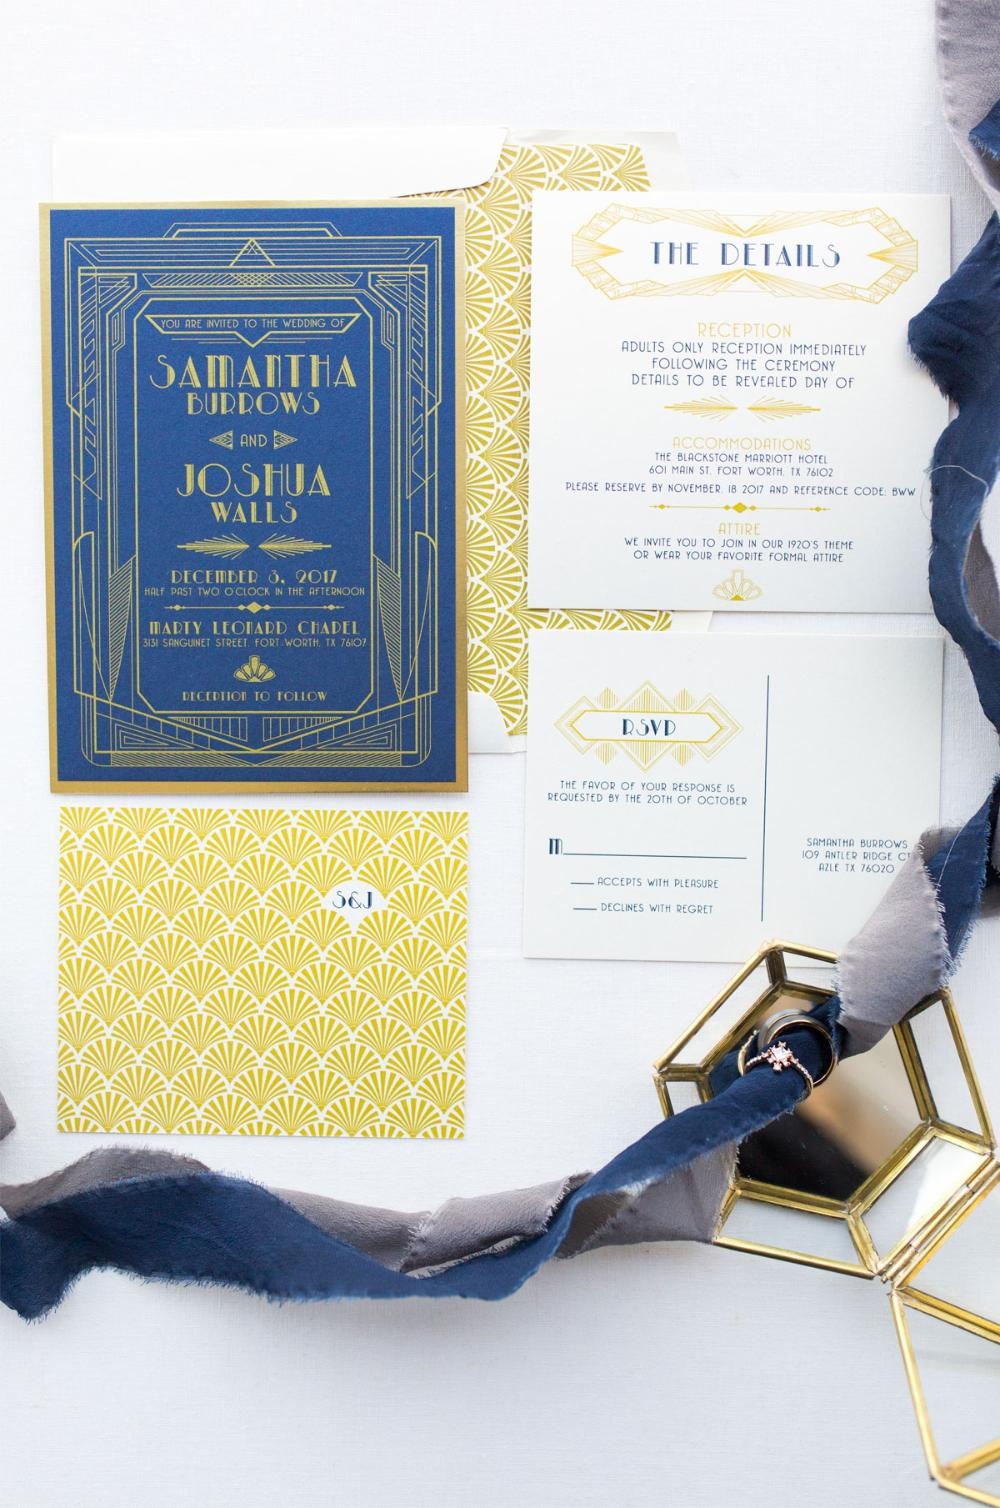 Navy Blue and Gold Art Deco Great Gatsby Roaring Twenties Themed Wedding Invitation, Details Insert and RSVP